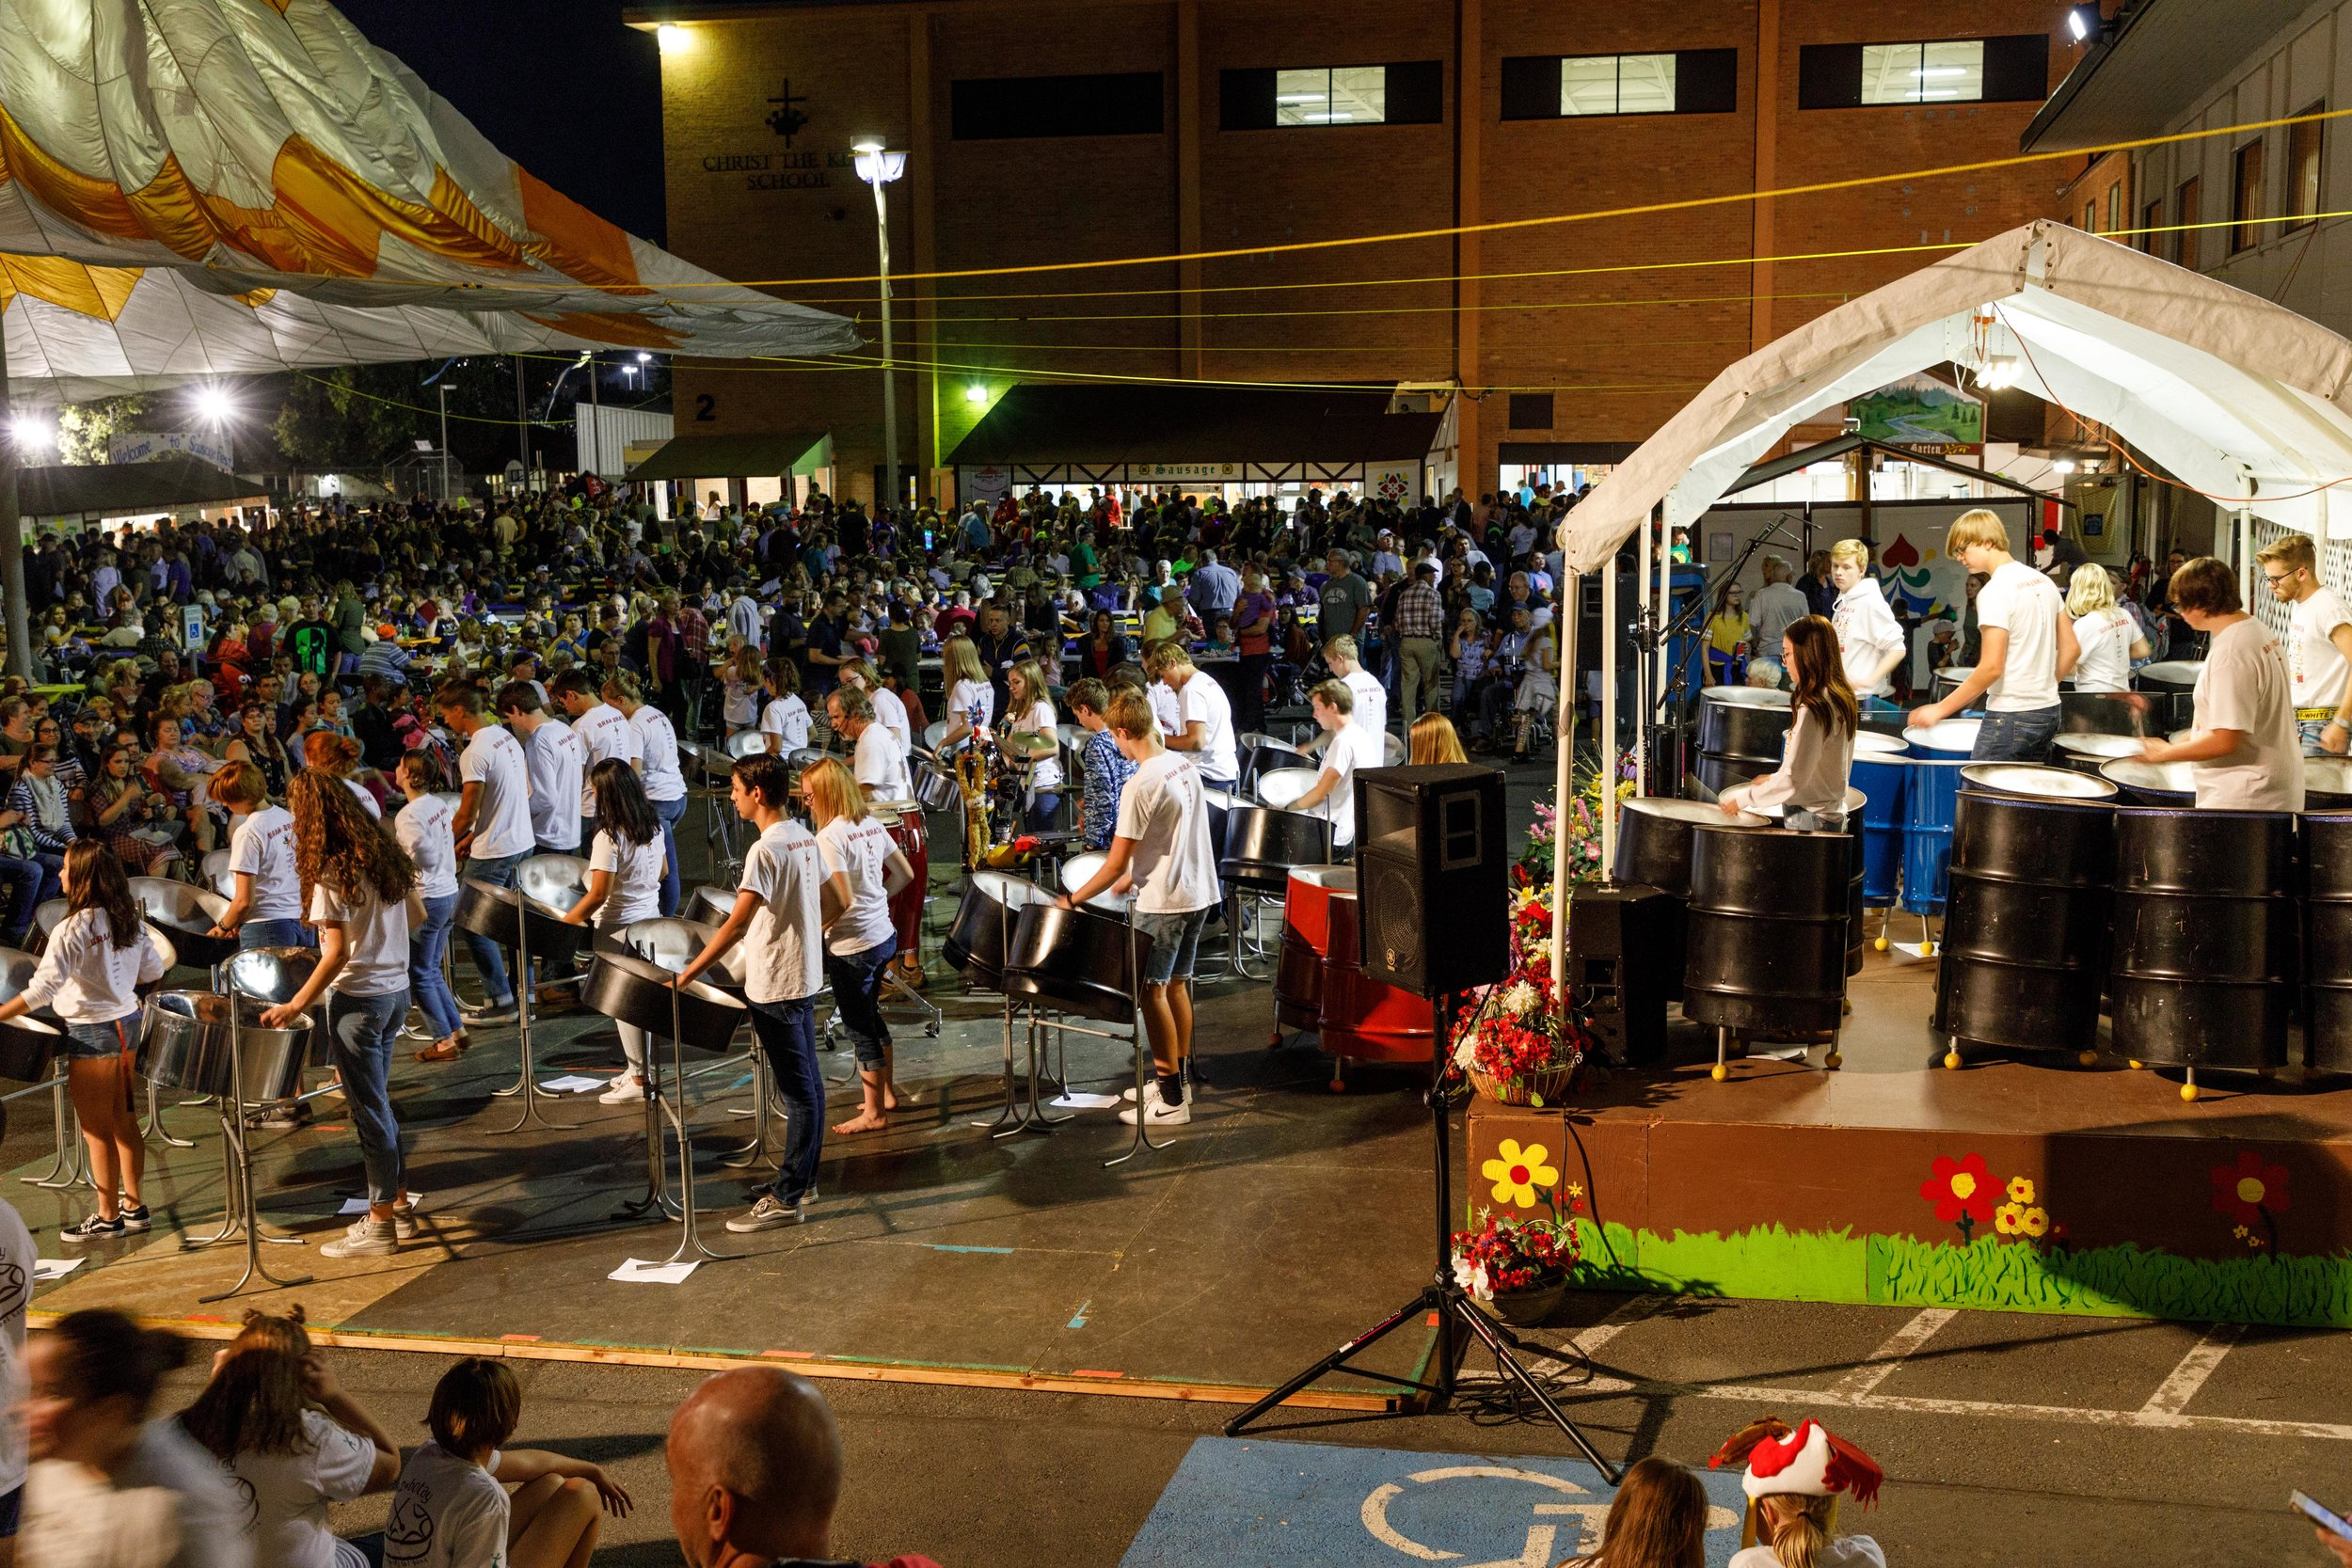 Students from local marimba bands perform on the main stage